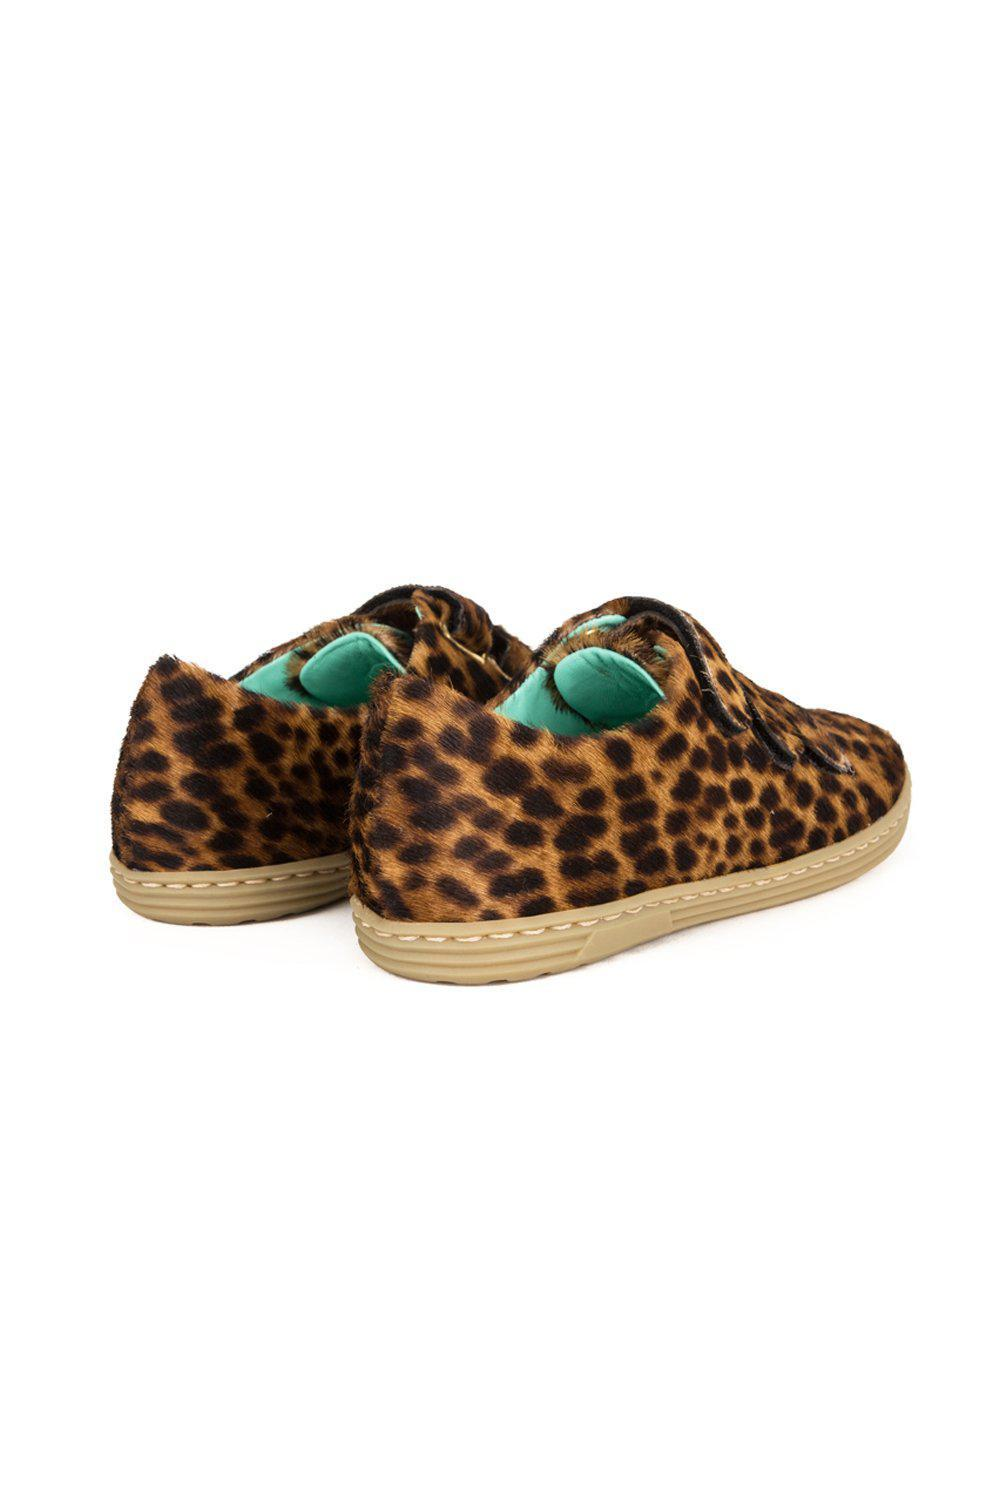 Sneakers in leopard printed leather